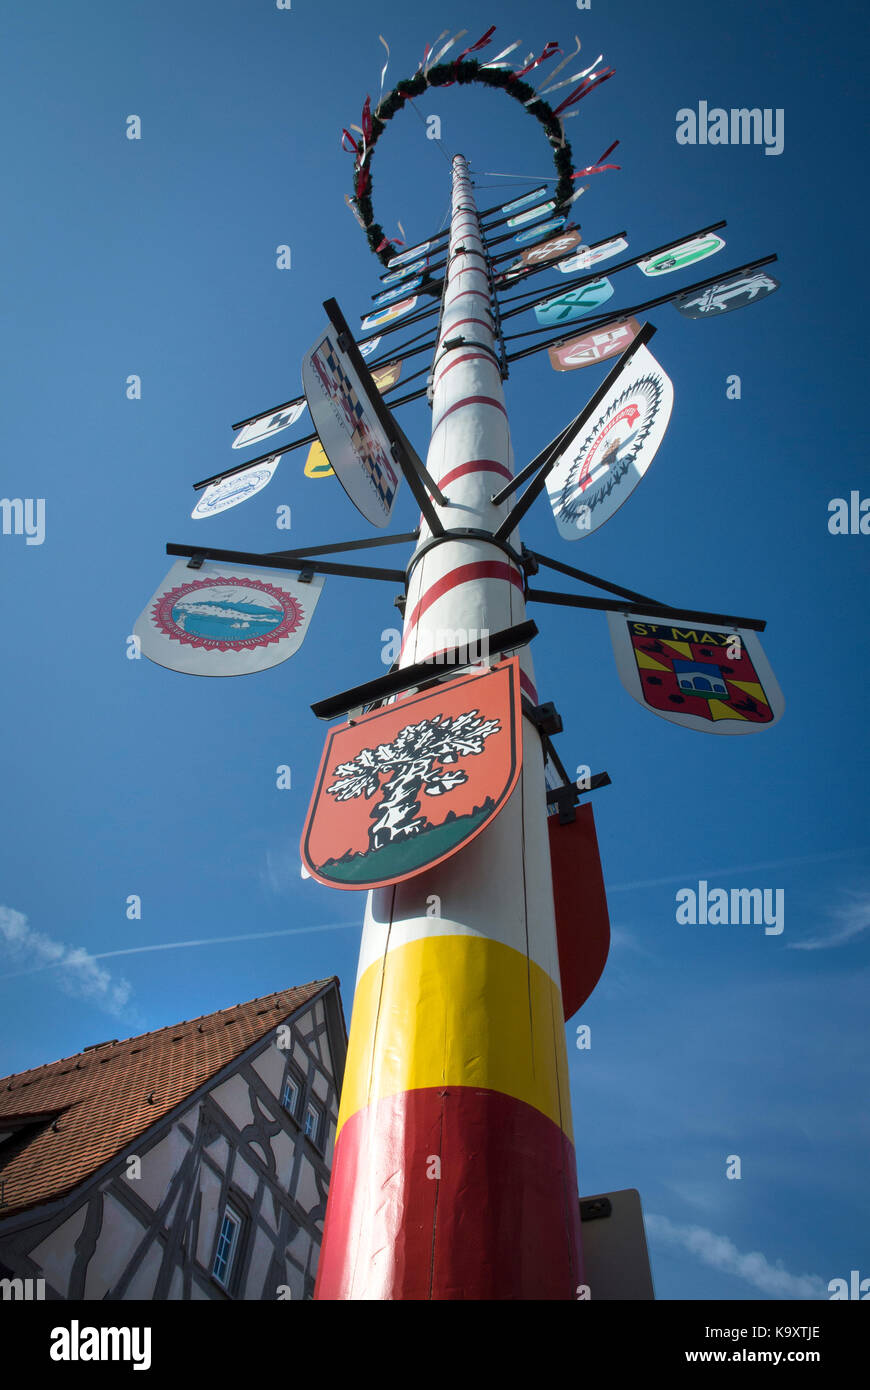 A Maypole in the town of Walldorf, Baden-Württemberg, Germany. - Stock Image